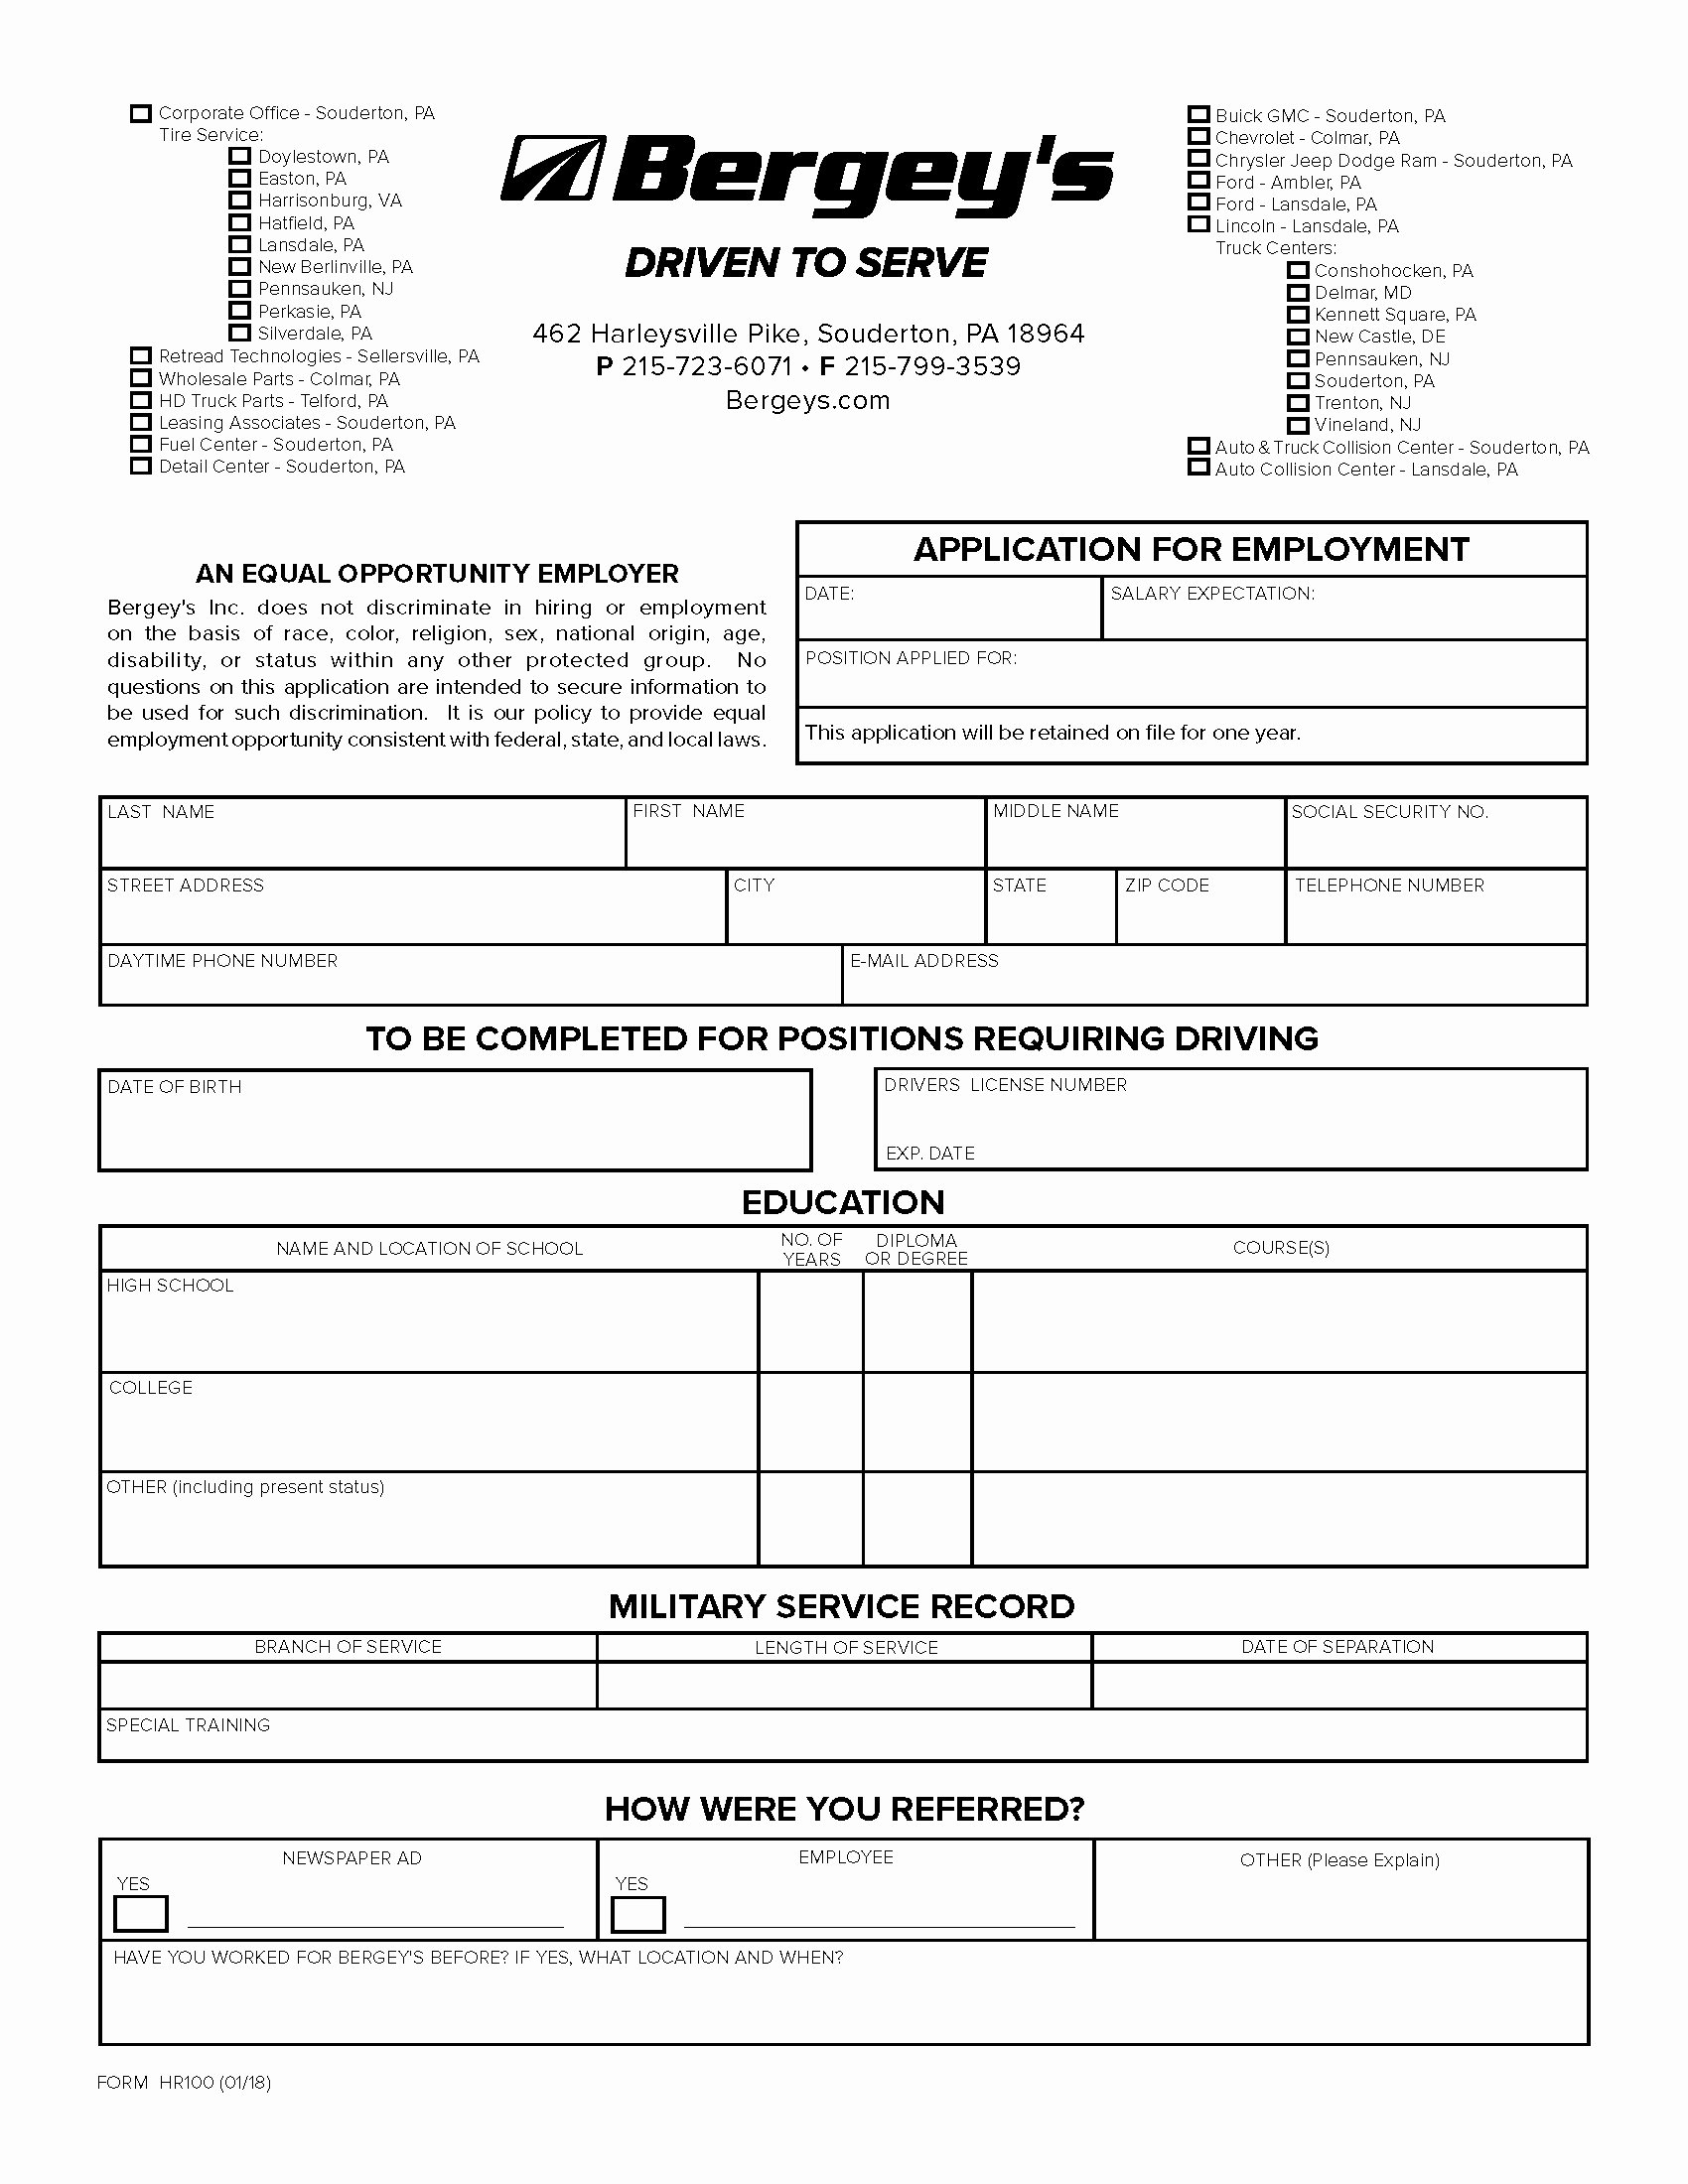 Ford Credit Application Pdf Unique Print Application